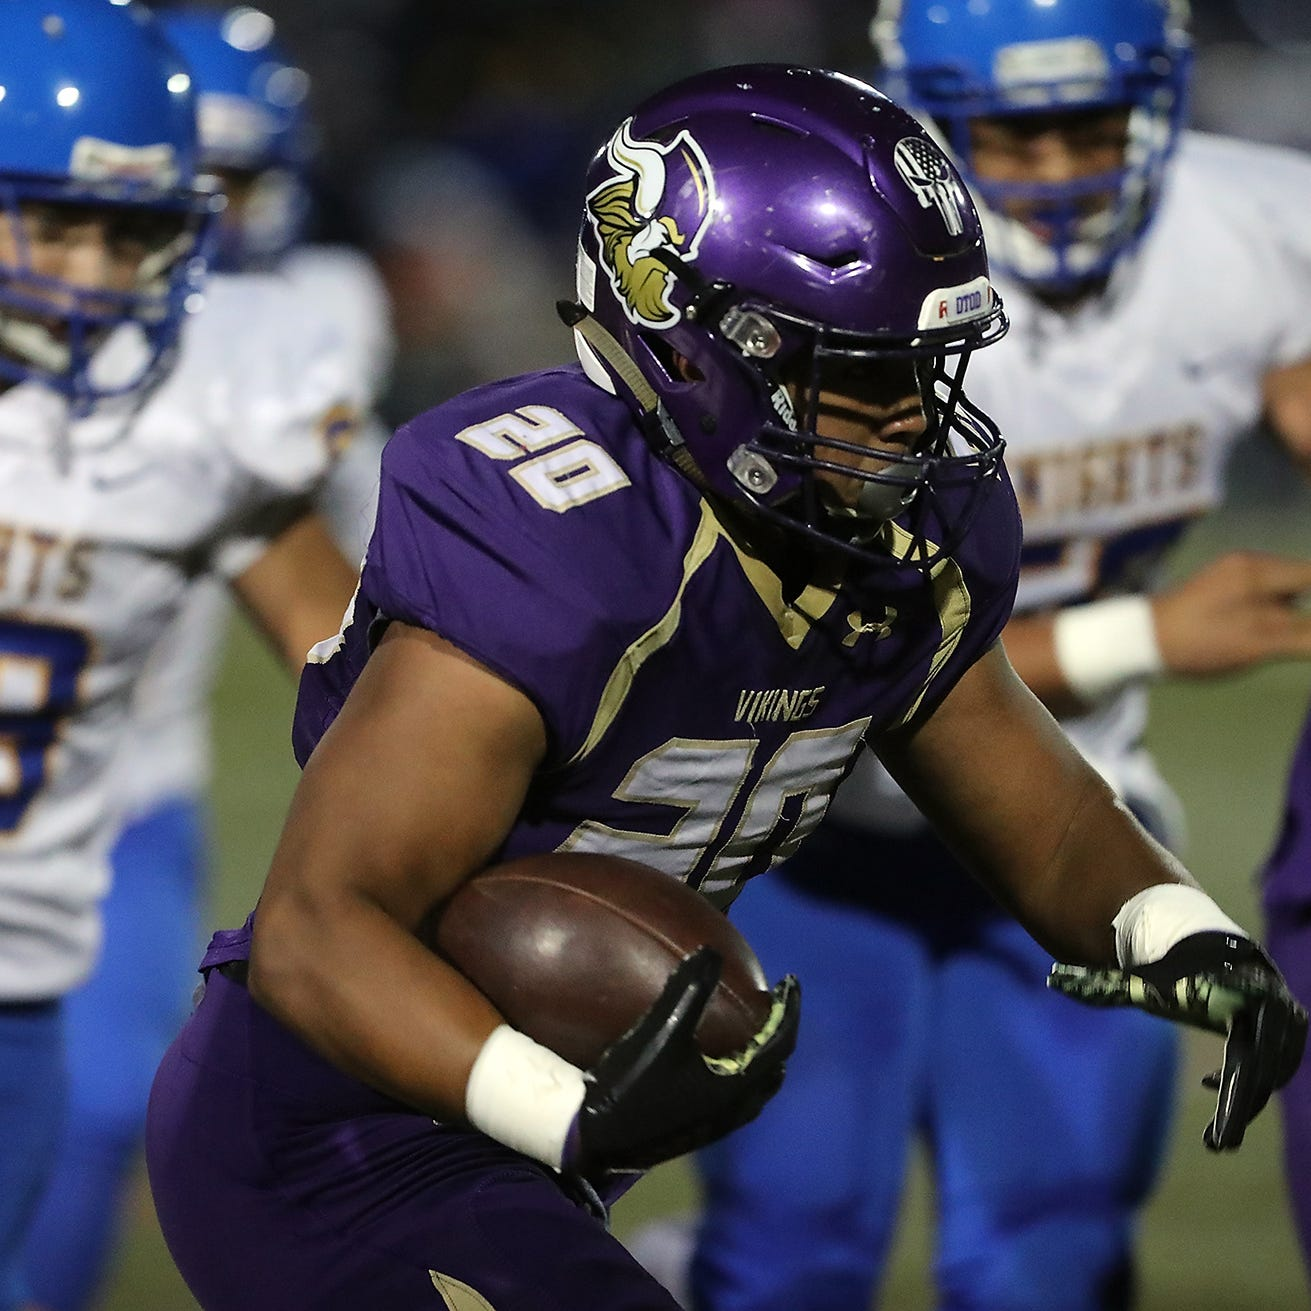 North Kitsap takes out its frustration on Bremerton